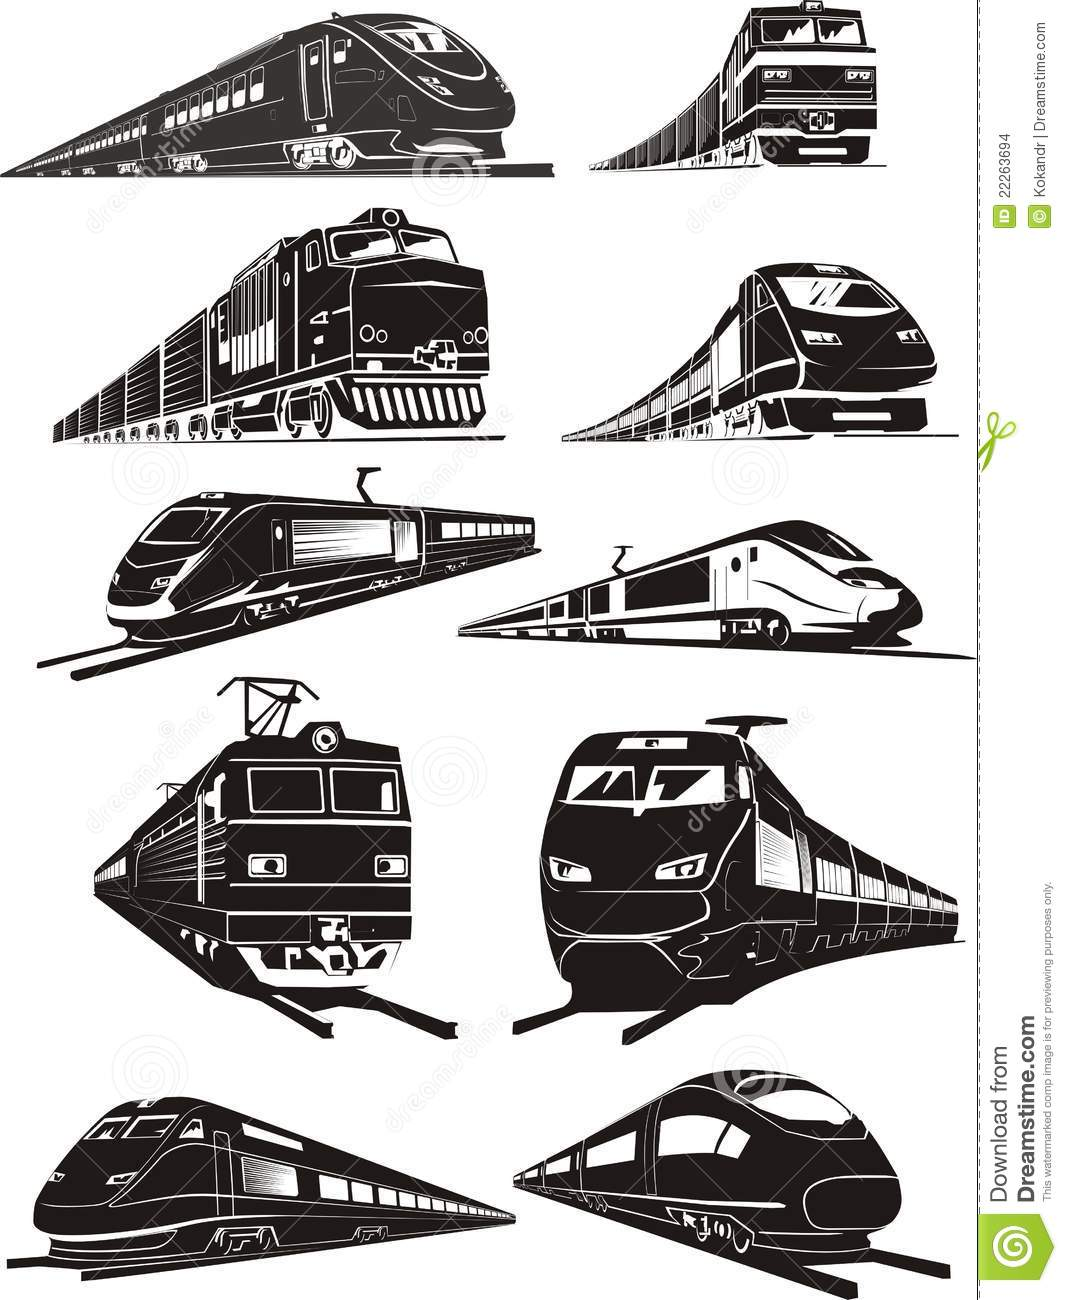 Train Silhouettes Stock Images - Image: 22263694